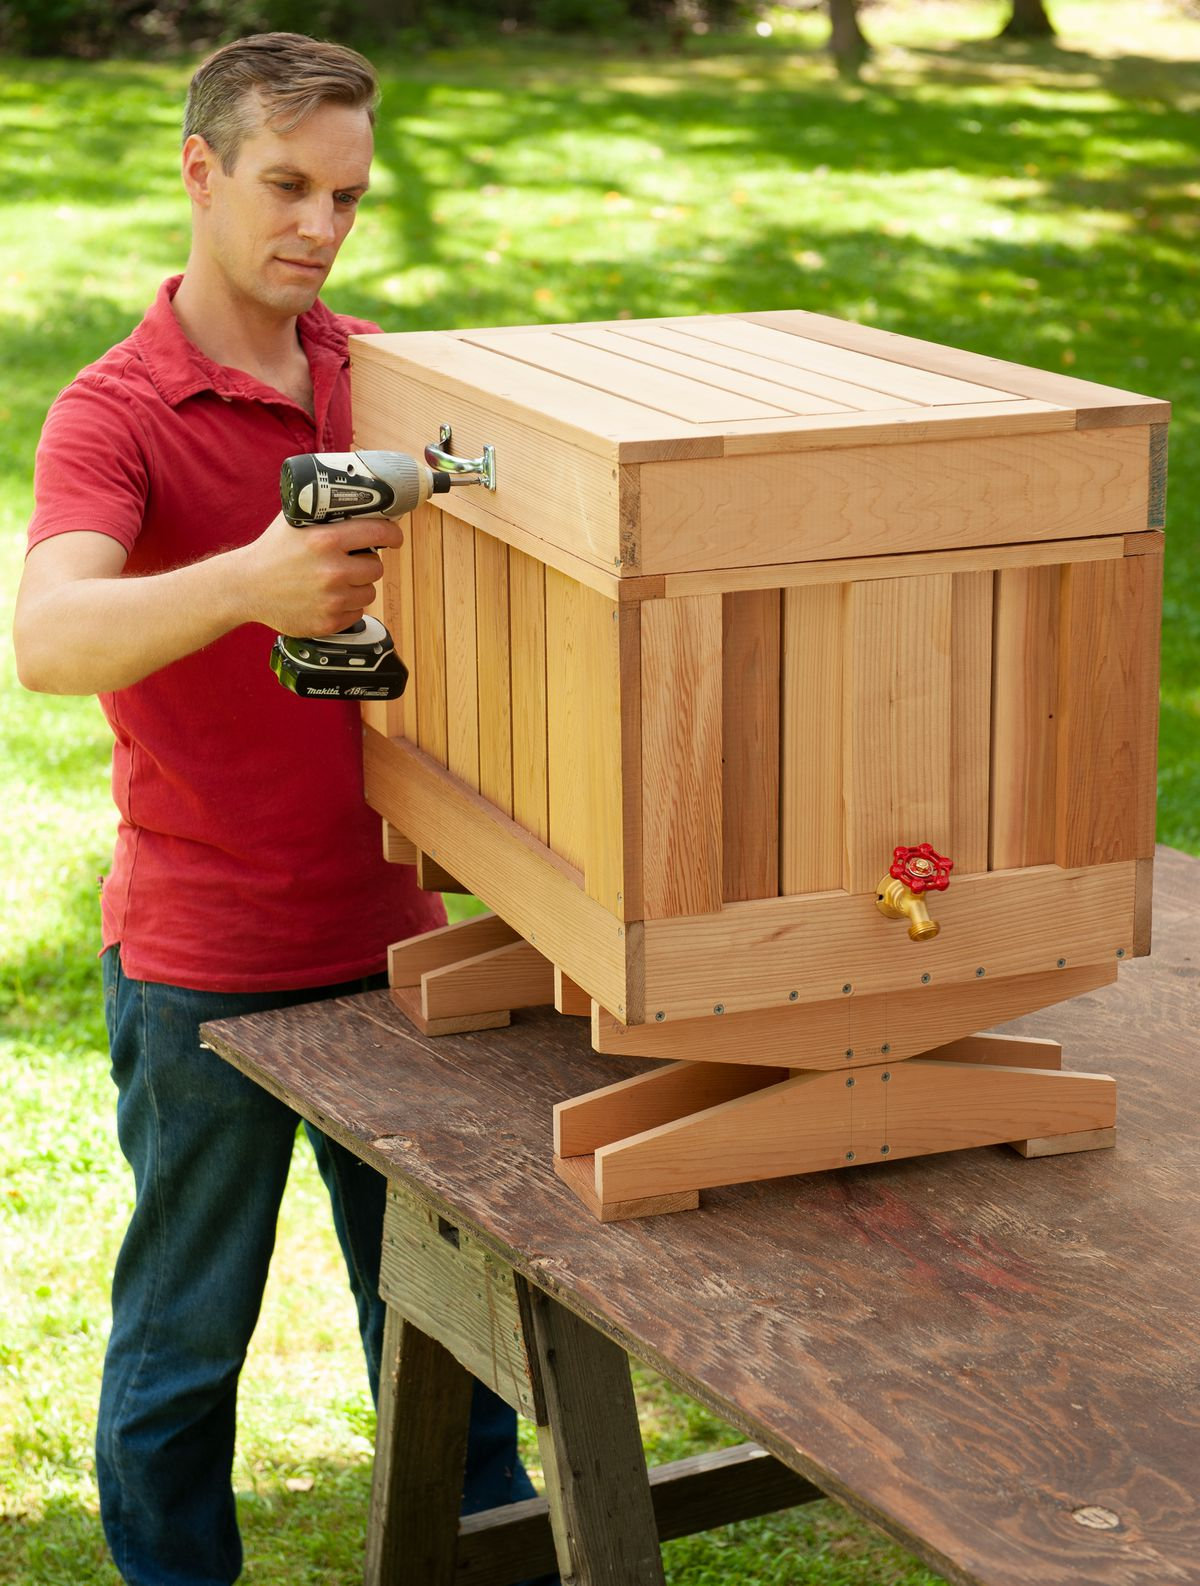 Man Adds Lid Handle And Bottle Opener To Finished Cedar Ice Chest